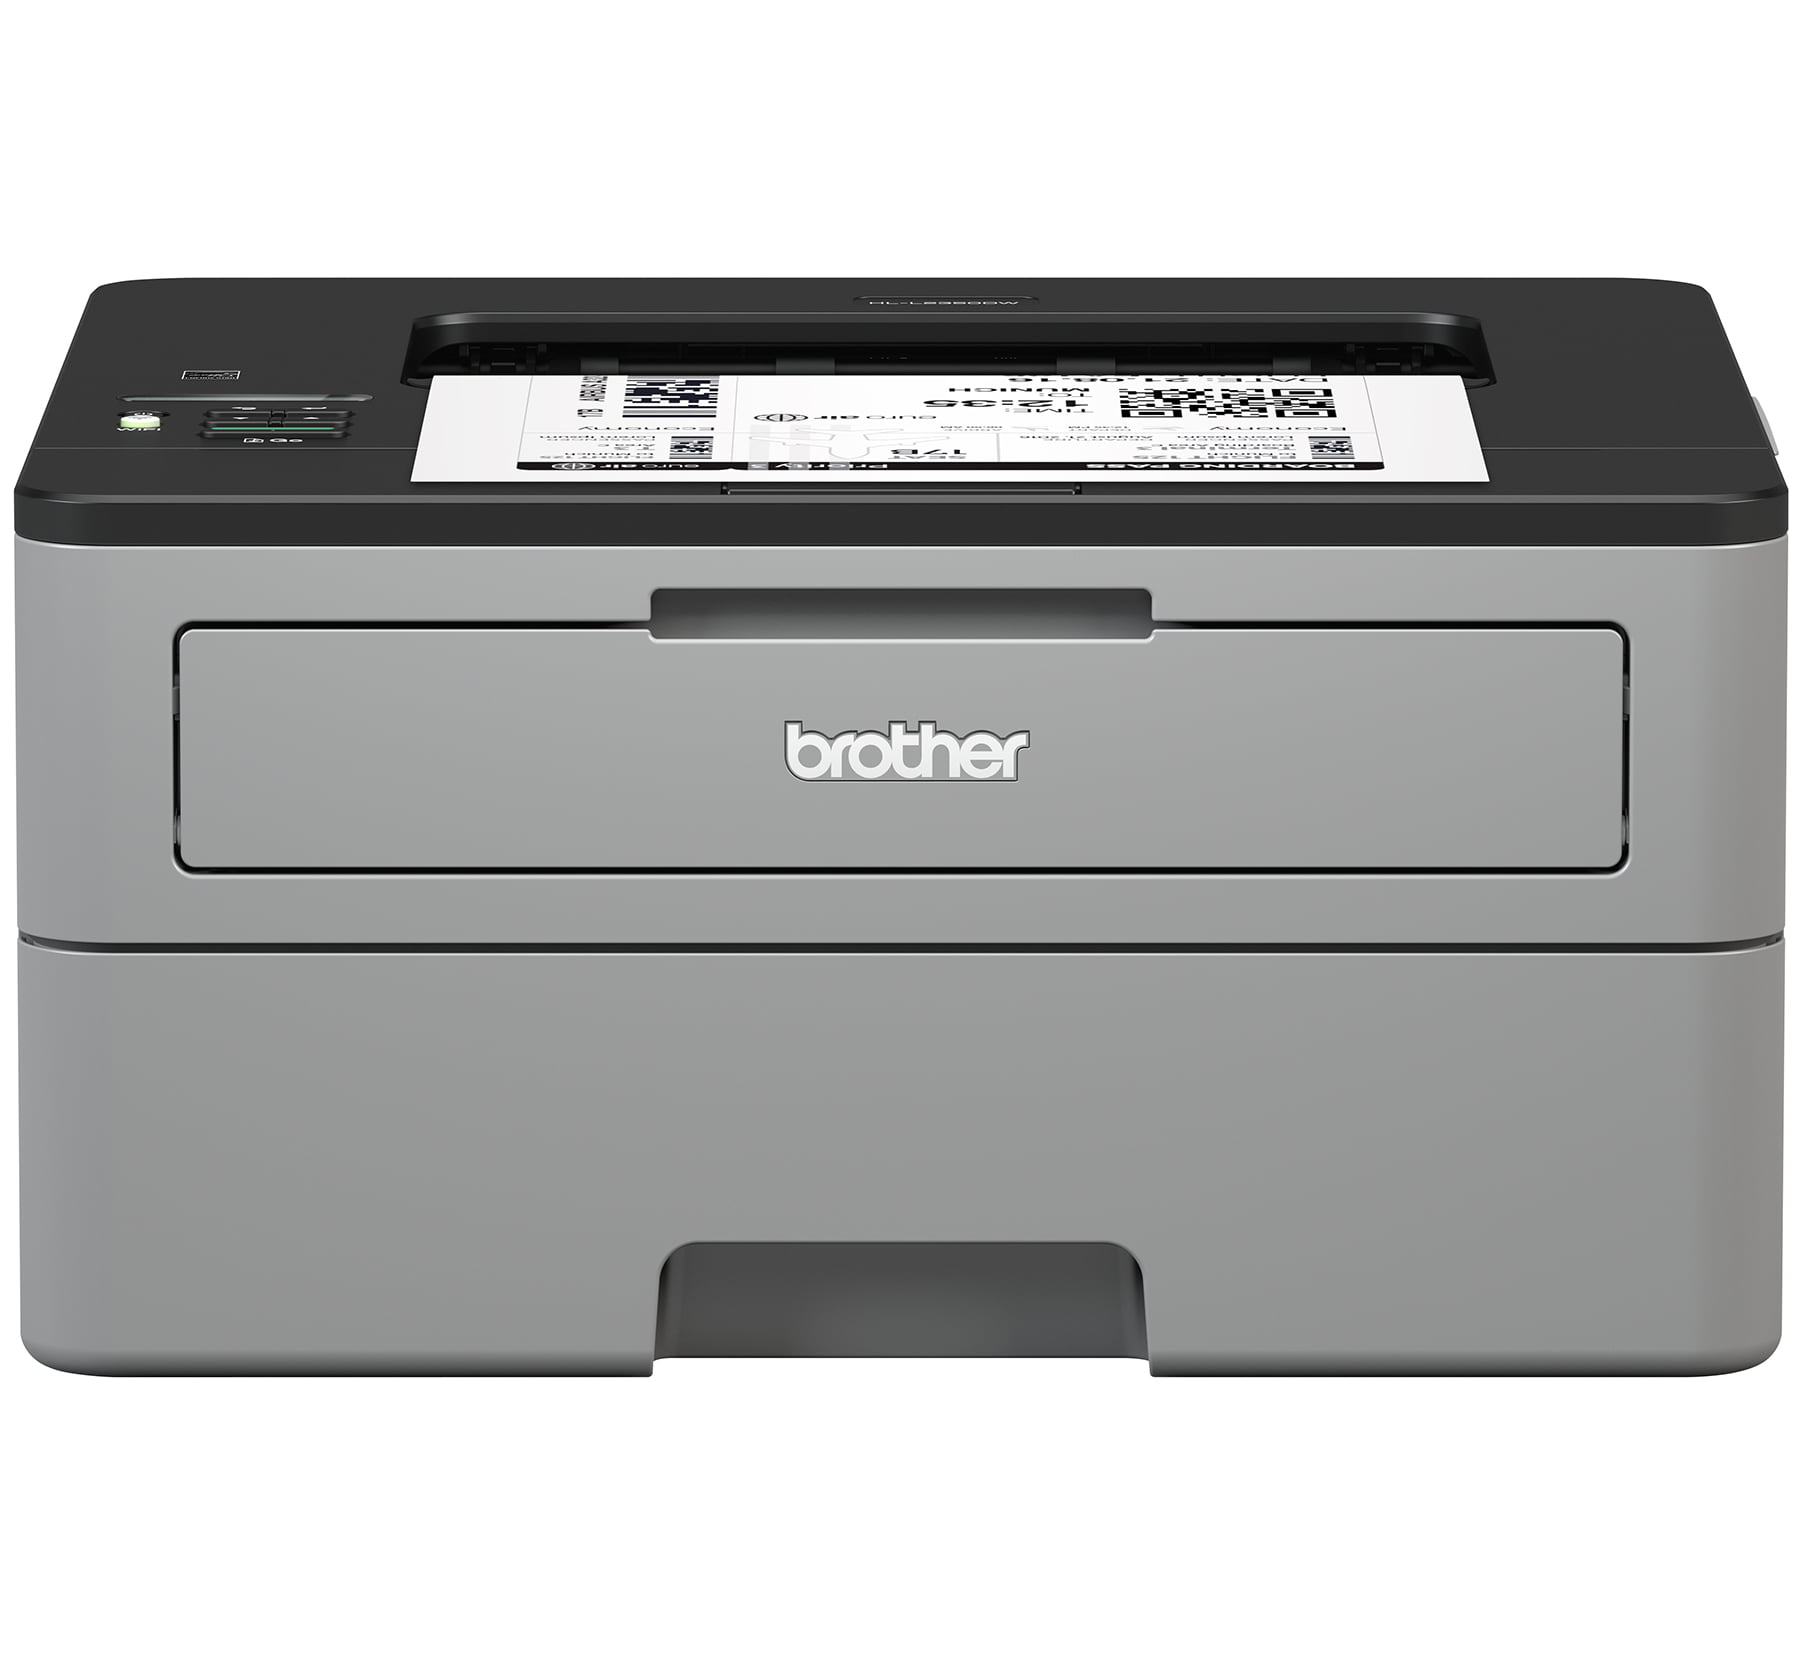 Brother HL-L2350DW Monochrome Laser Printer - Walmart.com